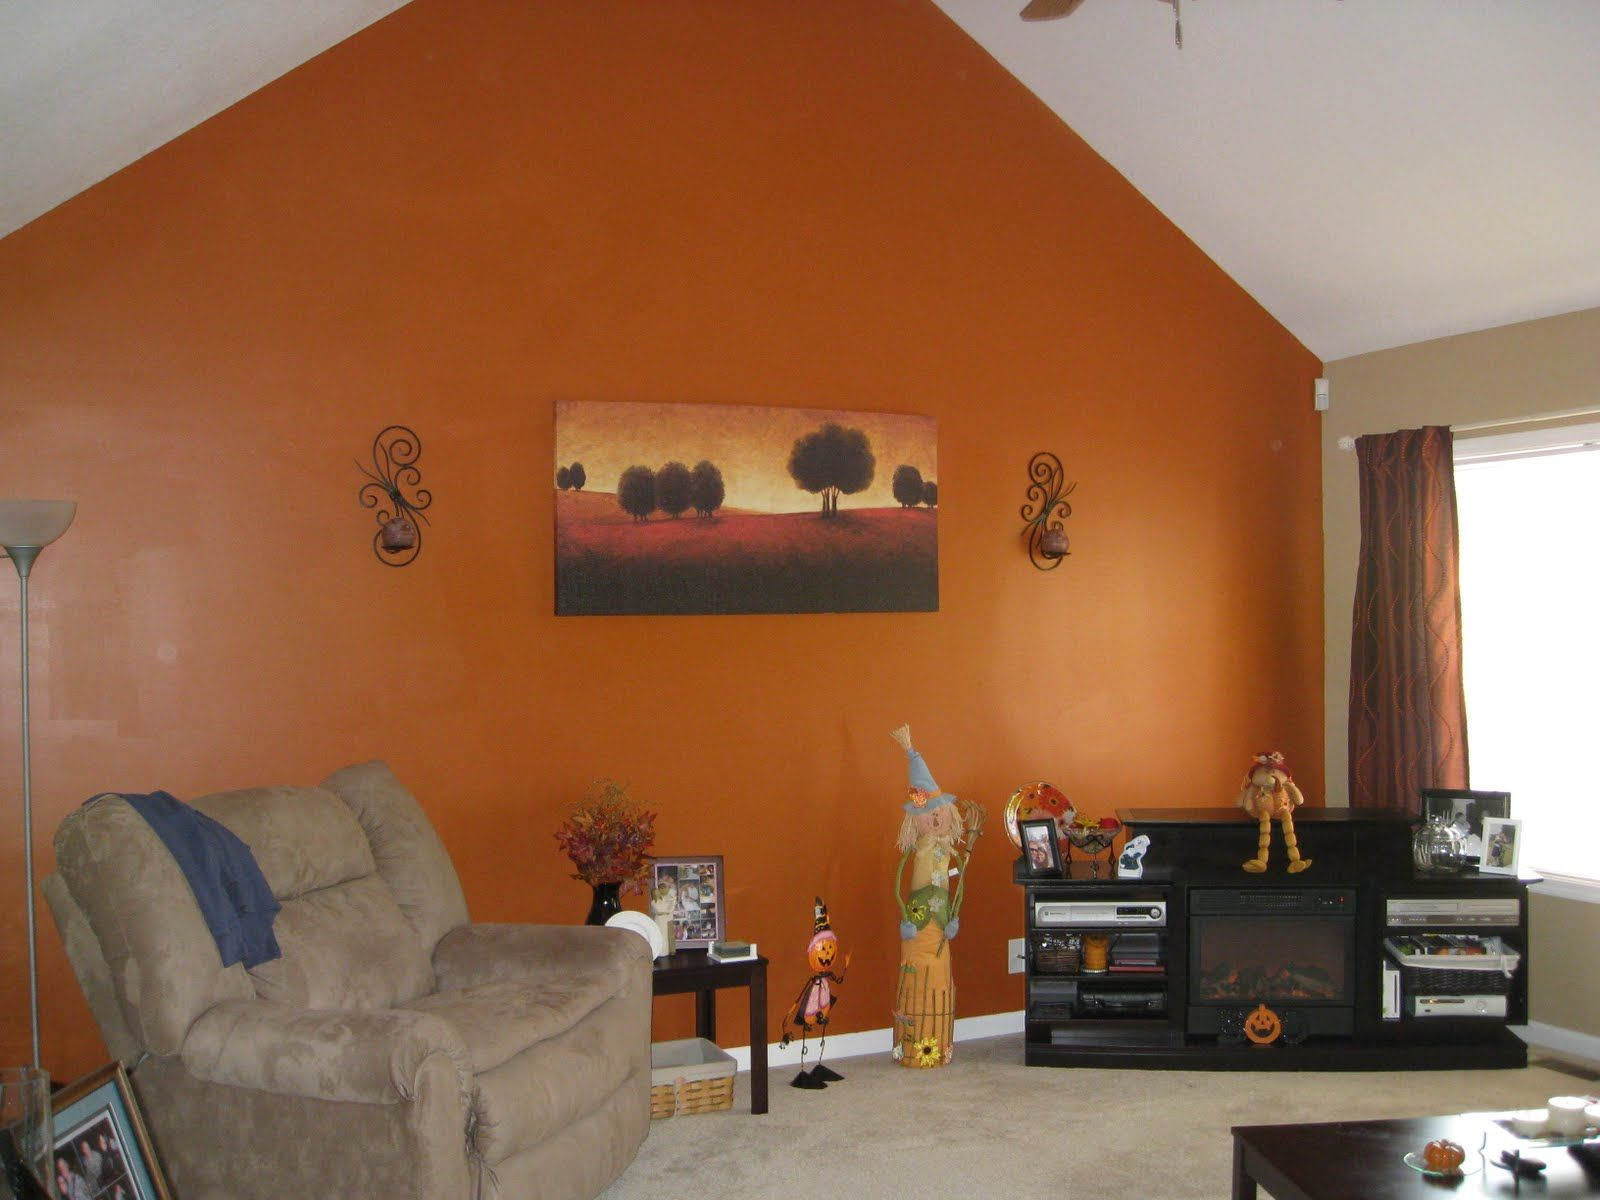 Living Room Design Ideas Orange Walls living room decor orange decorating ideas on a budget brown and